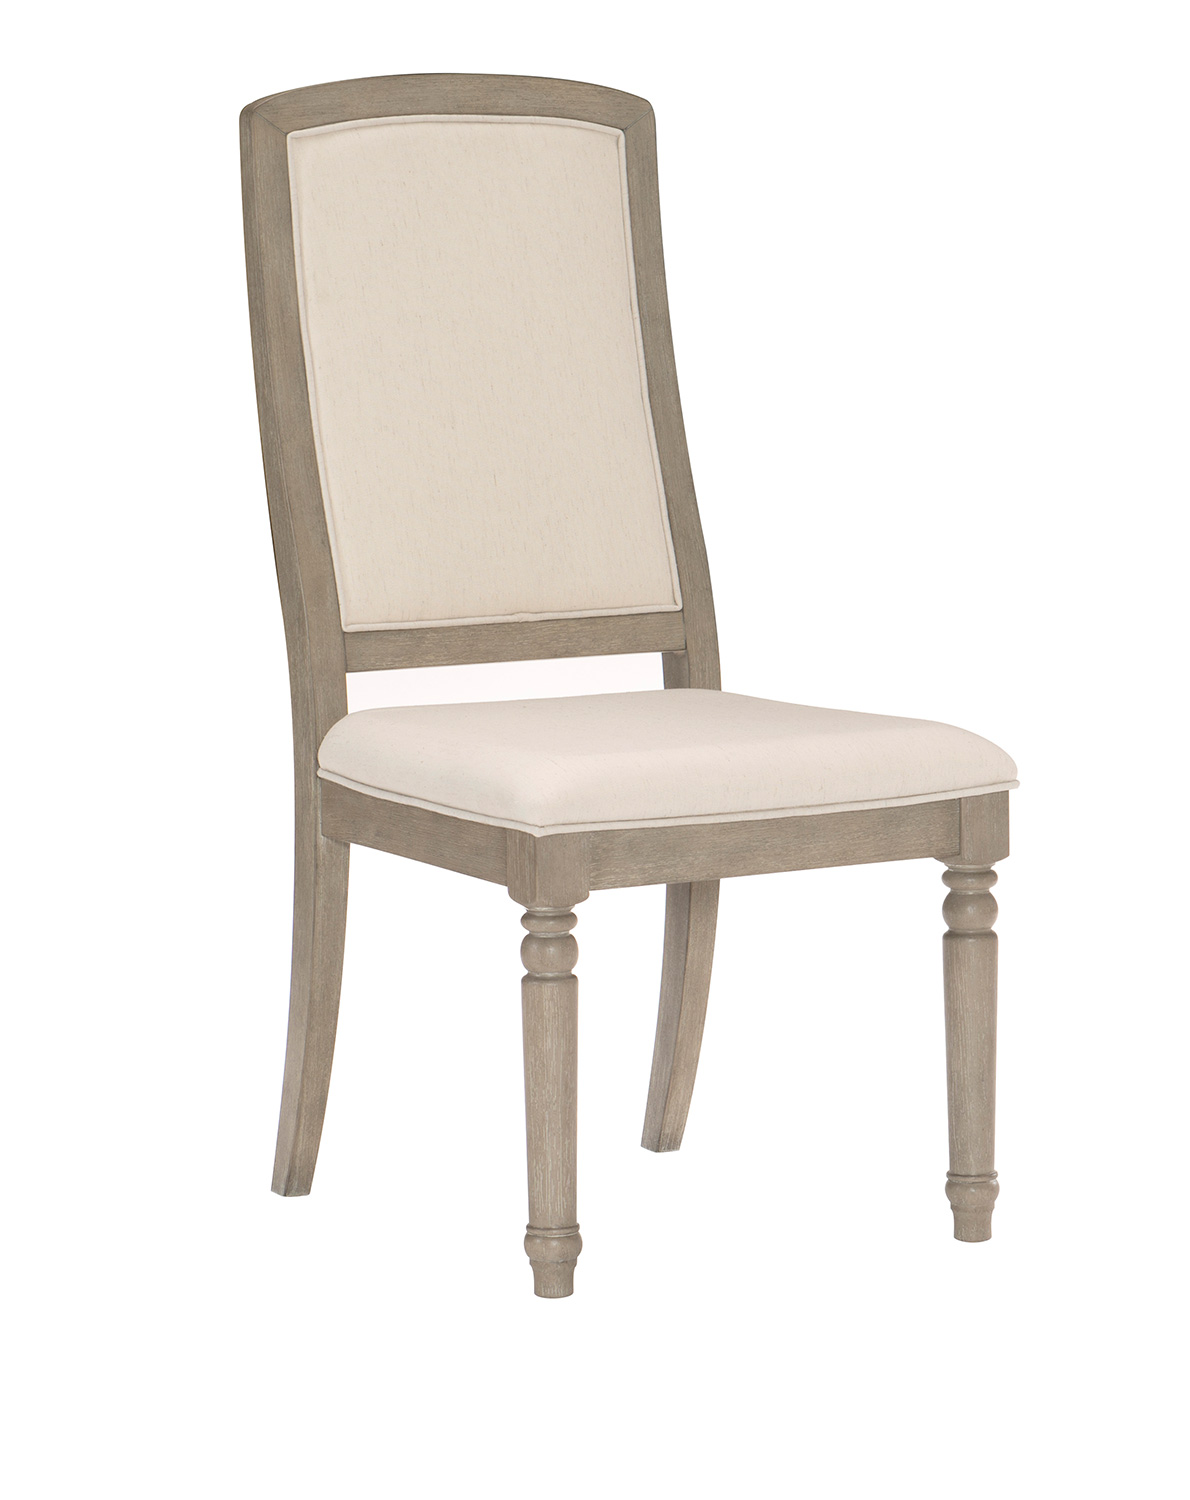 Homelegance Grayling Side Chair - Driftwood Gray